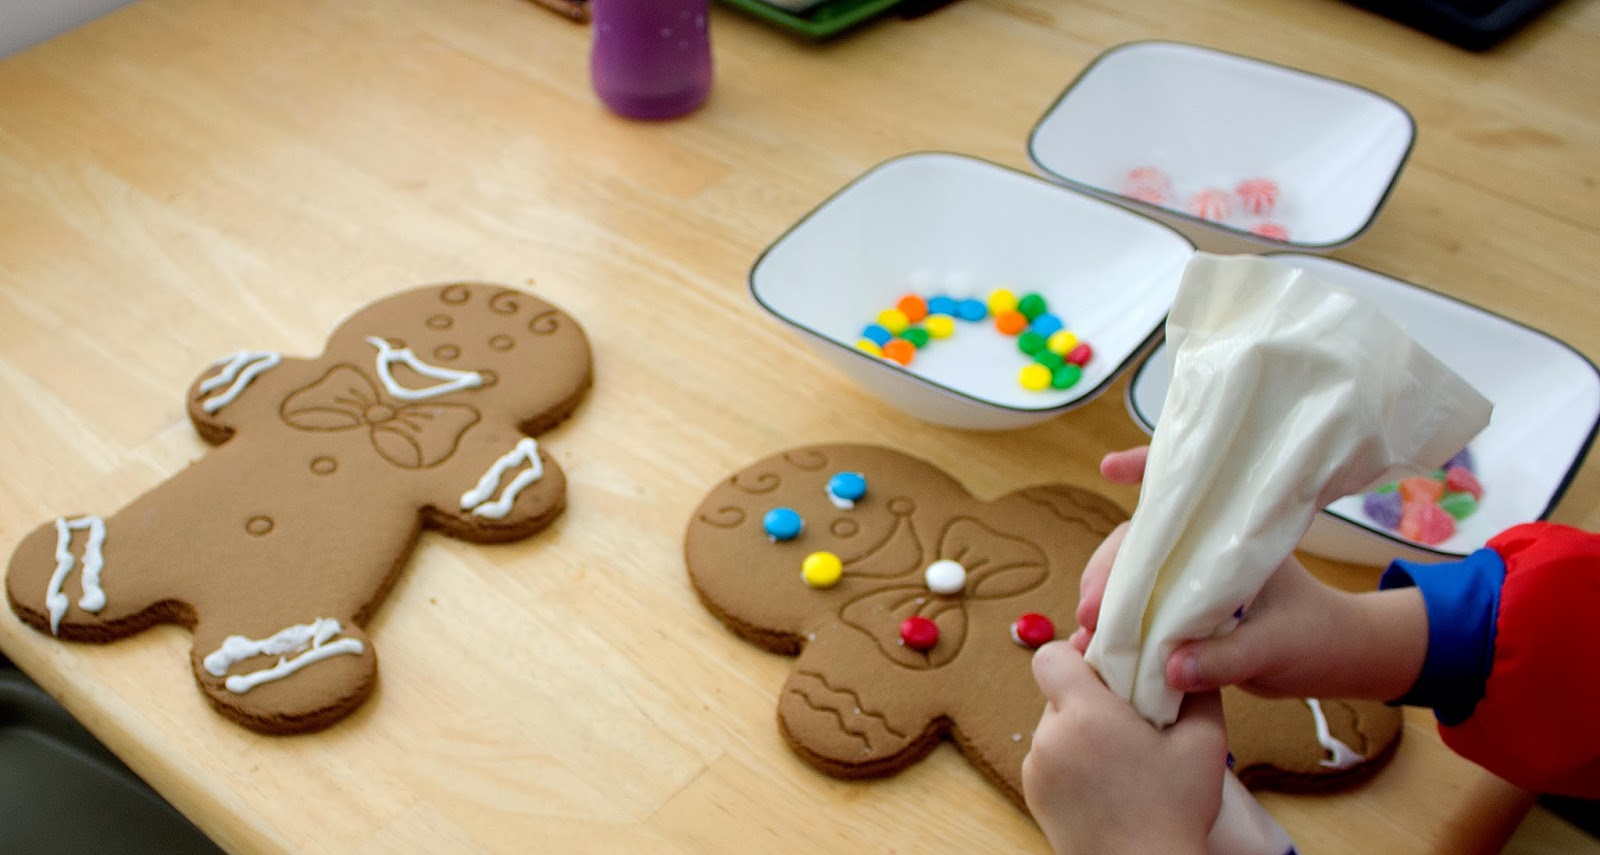 Livin the good life decorating gingerbread men - Decorations for gingerbread man ...